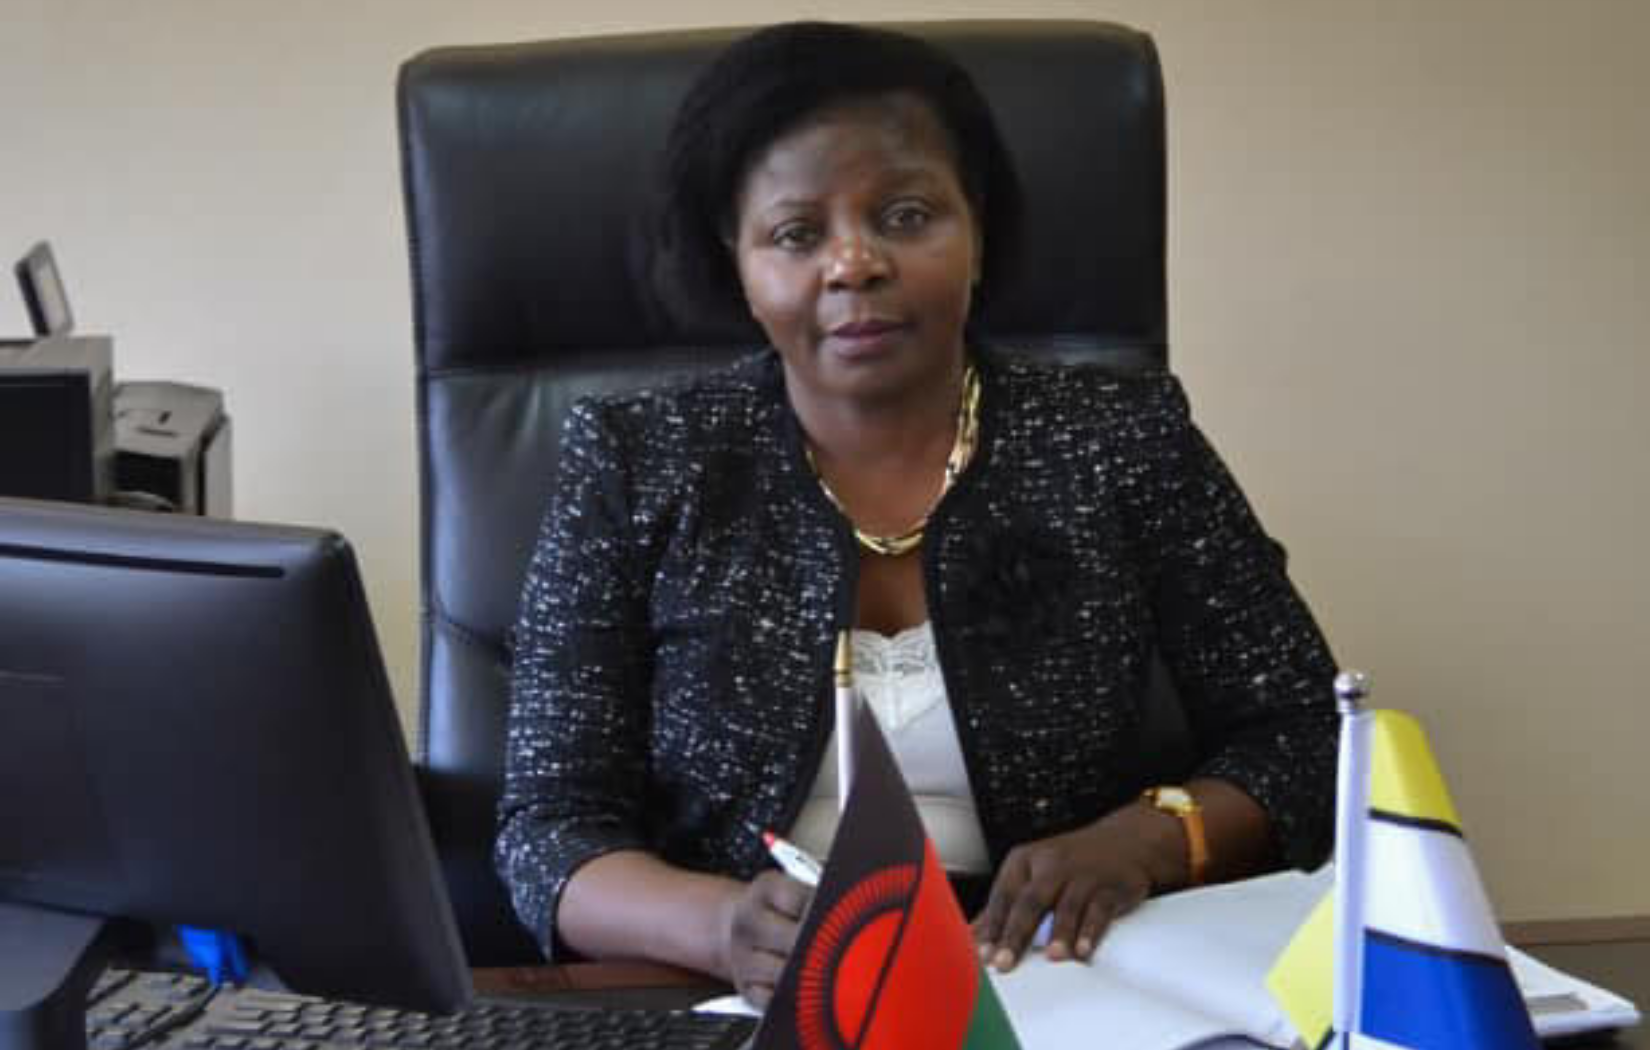 Dr. Mercy Pindani, former principal of Kamuzu University of Health Sciences in Southern Malawi, is honored and remembered for her work in health workforce development in Malawi and her commitment and dedication to the next generation of healthcare professionals.